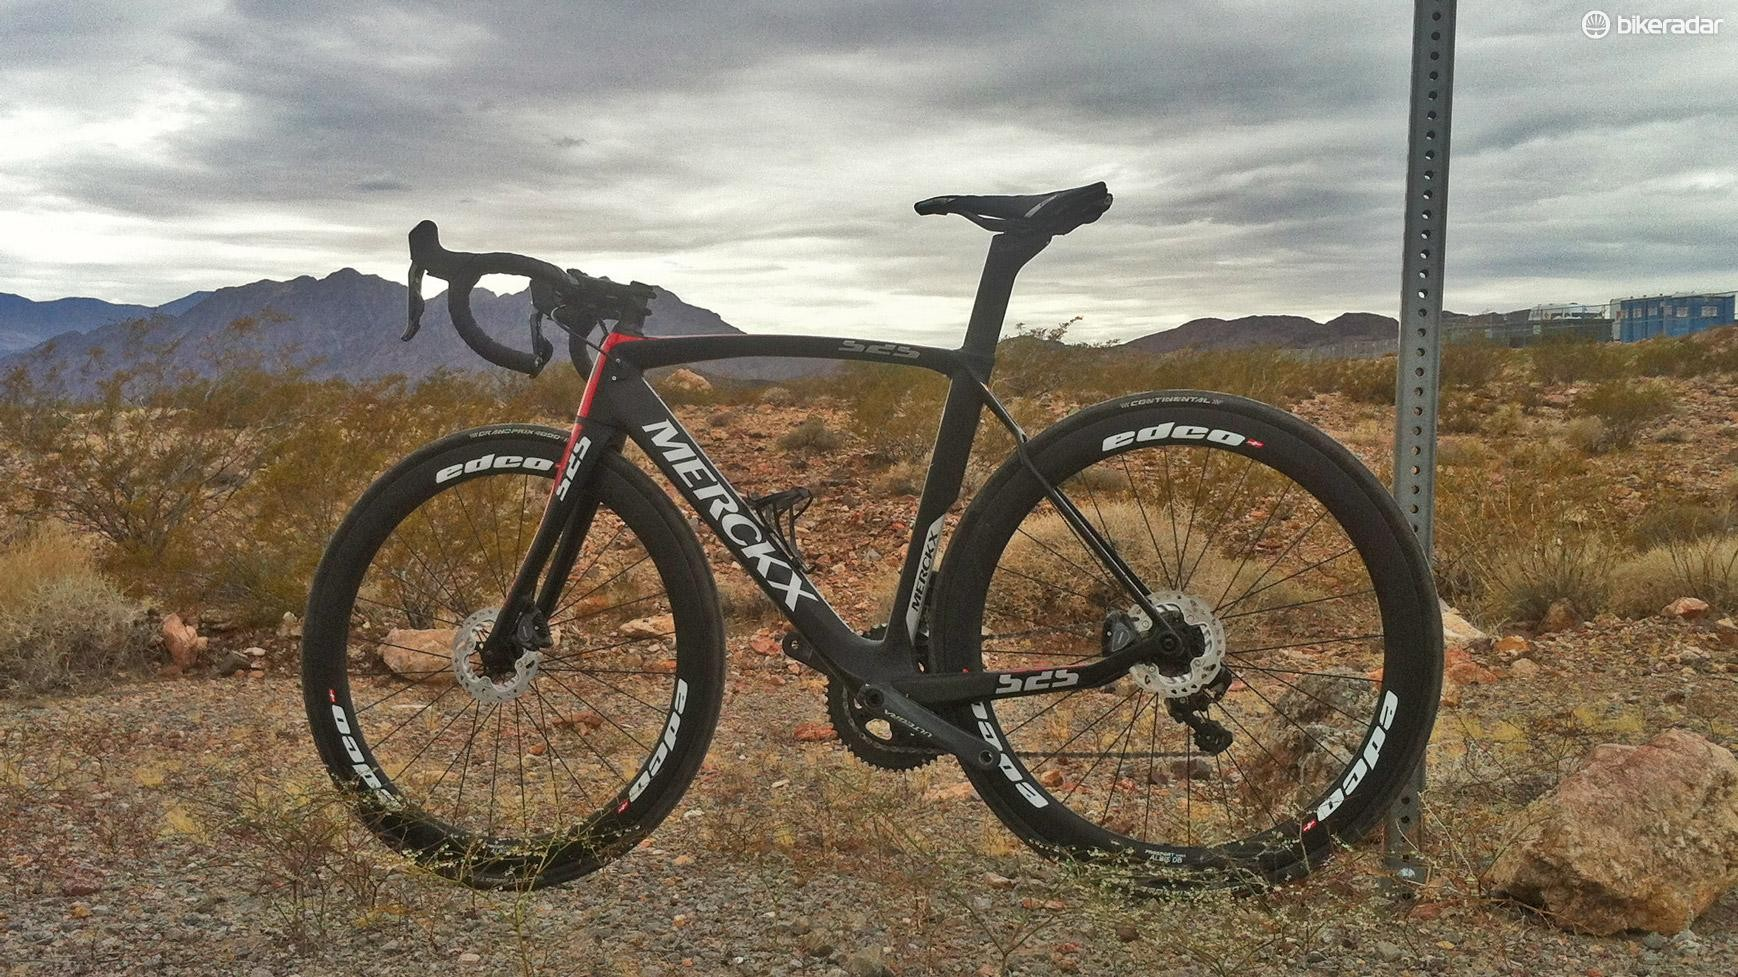 This is Eddy Merckx's EM525 Disc Performance race bike for 2017